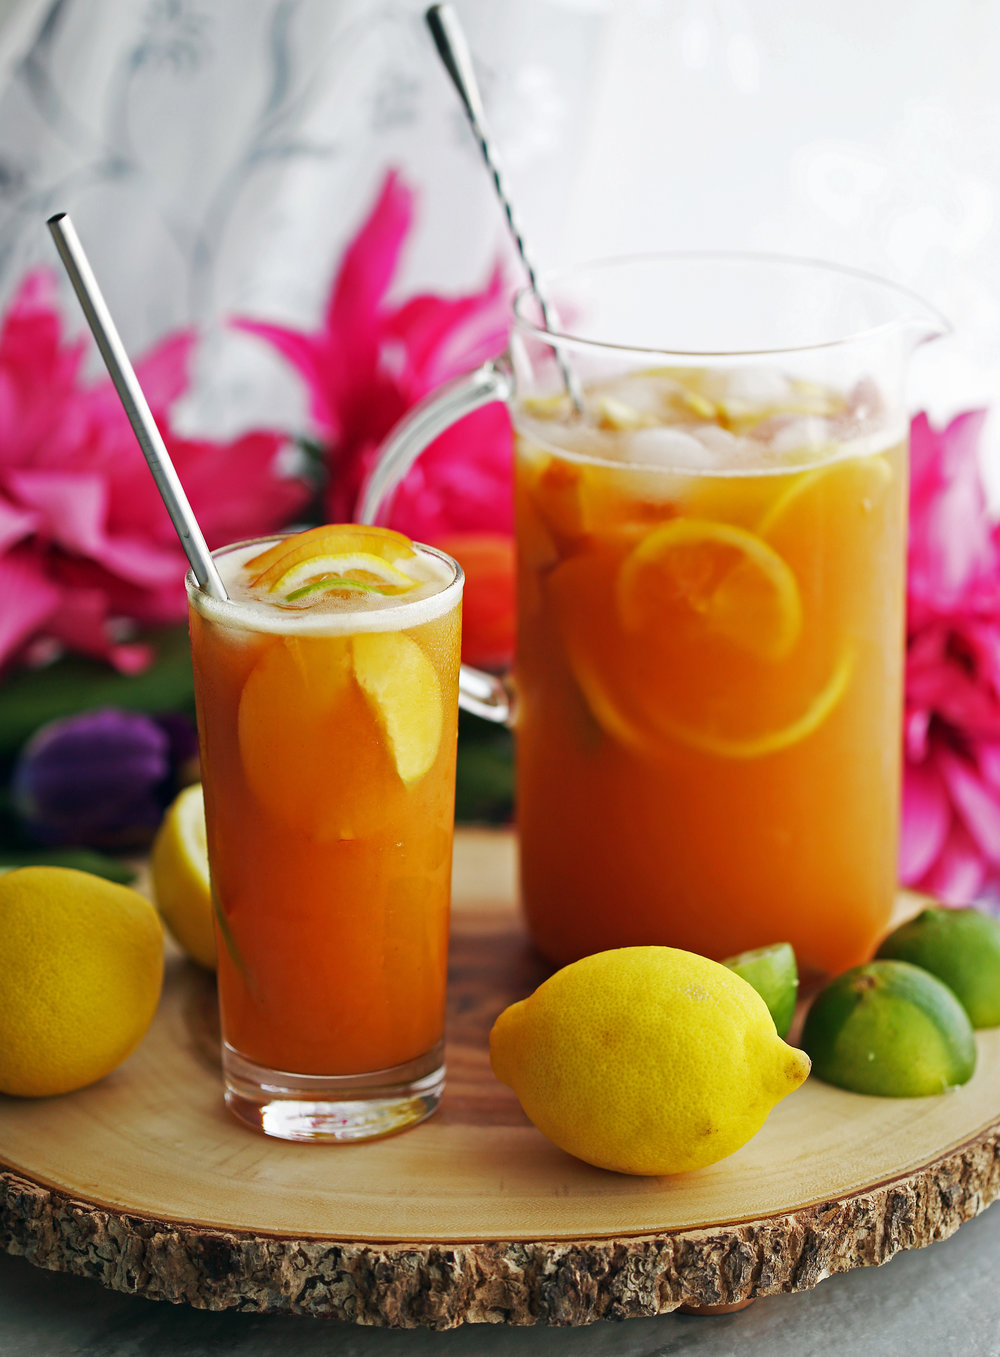 Maple peach citrus juice with fruit slices and ice in a tall drinking glass and glass container.